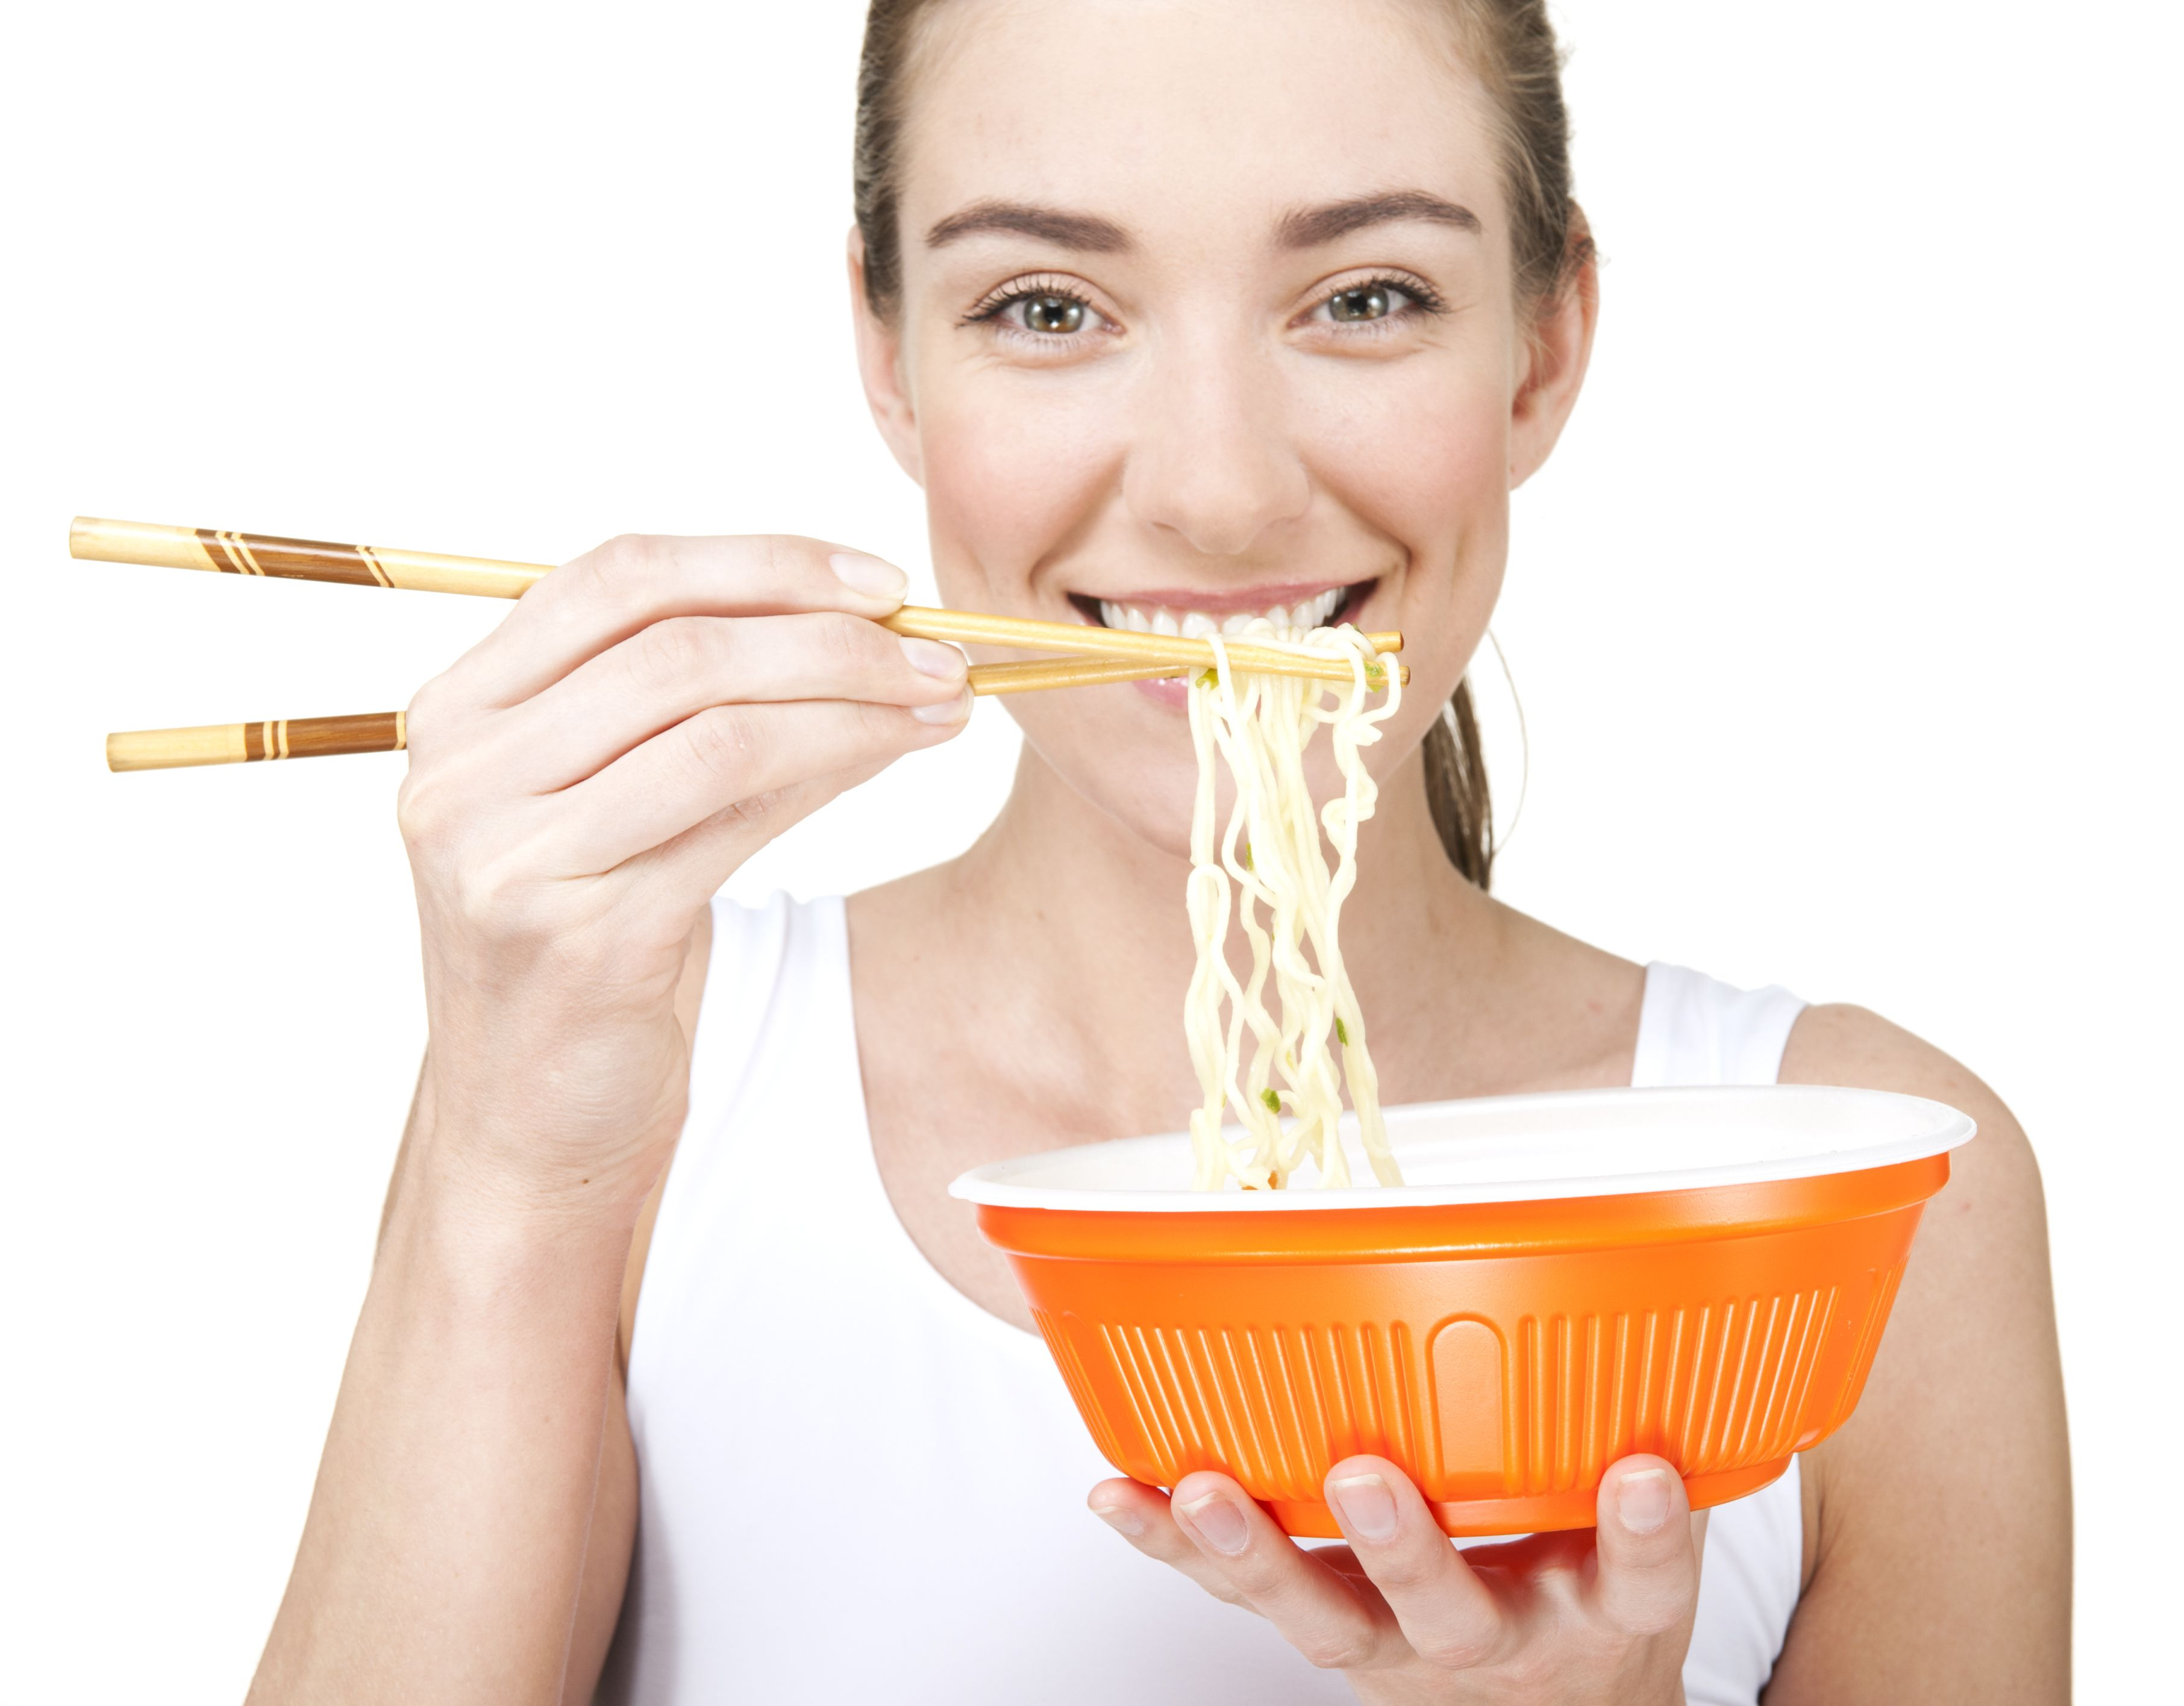 ramen nutrition facts and how to make them healthier